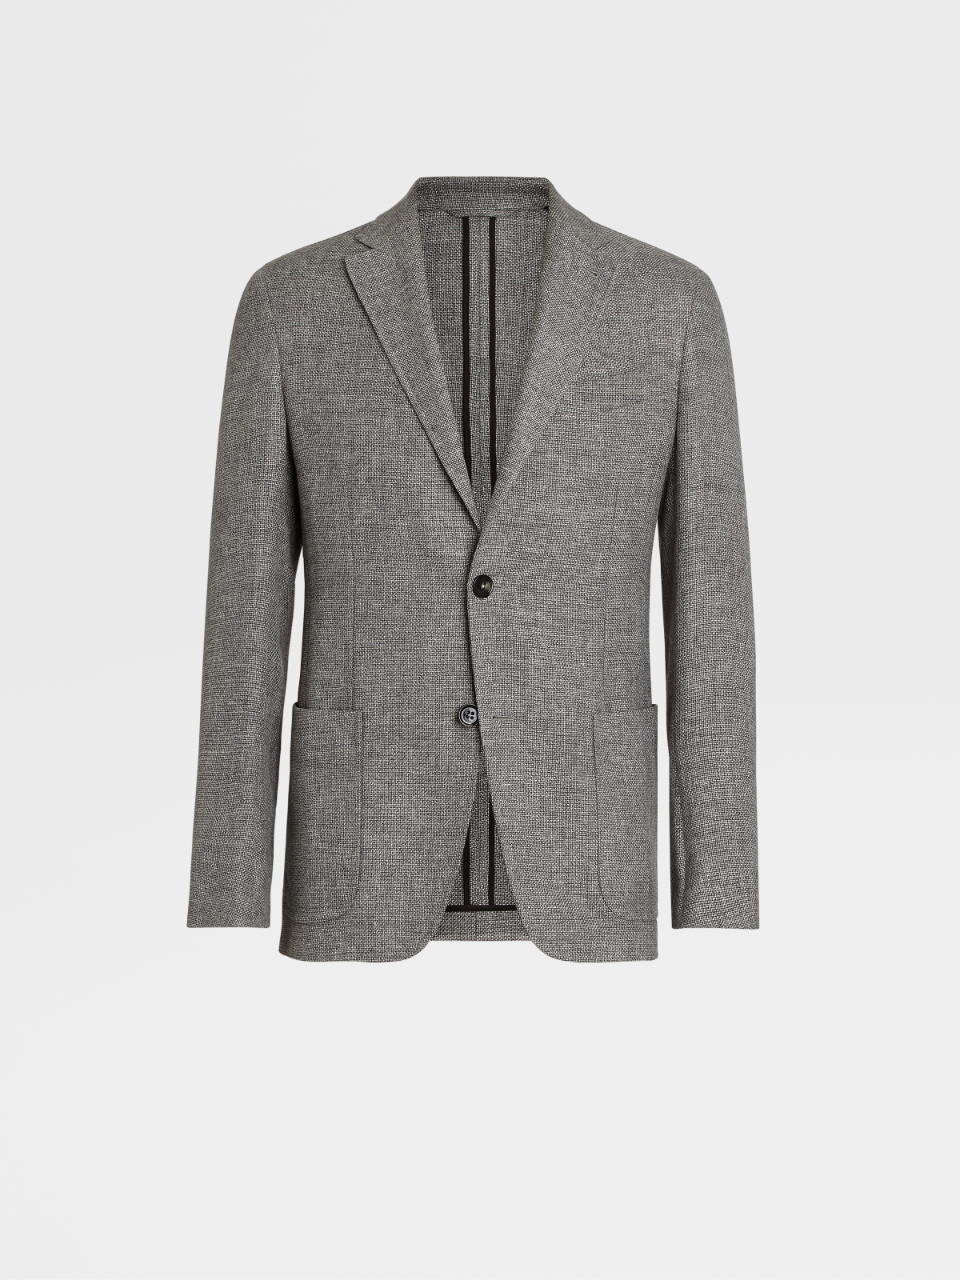 Wool And Linen Jacket